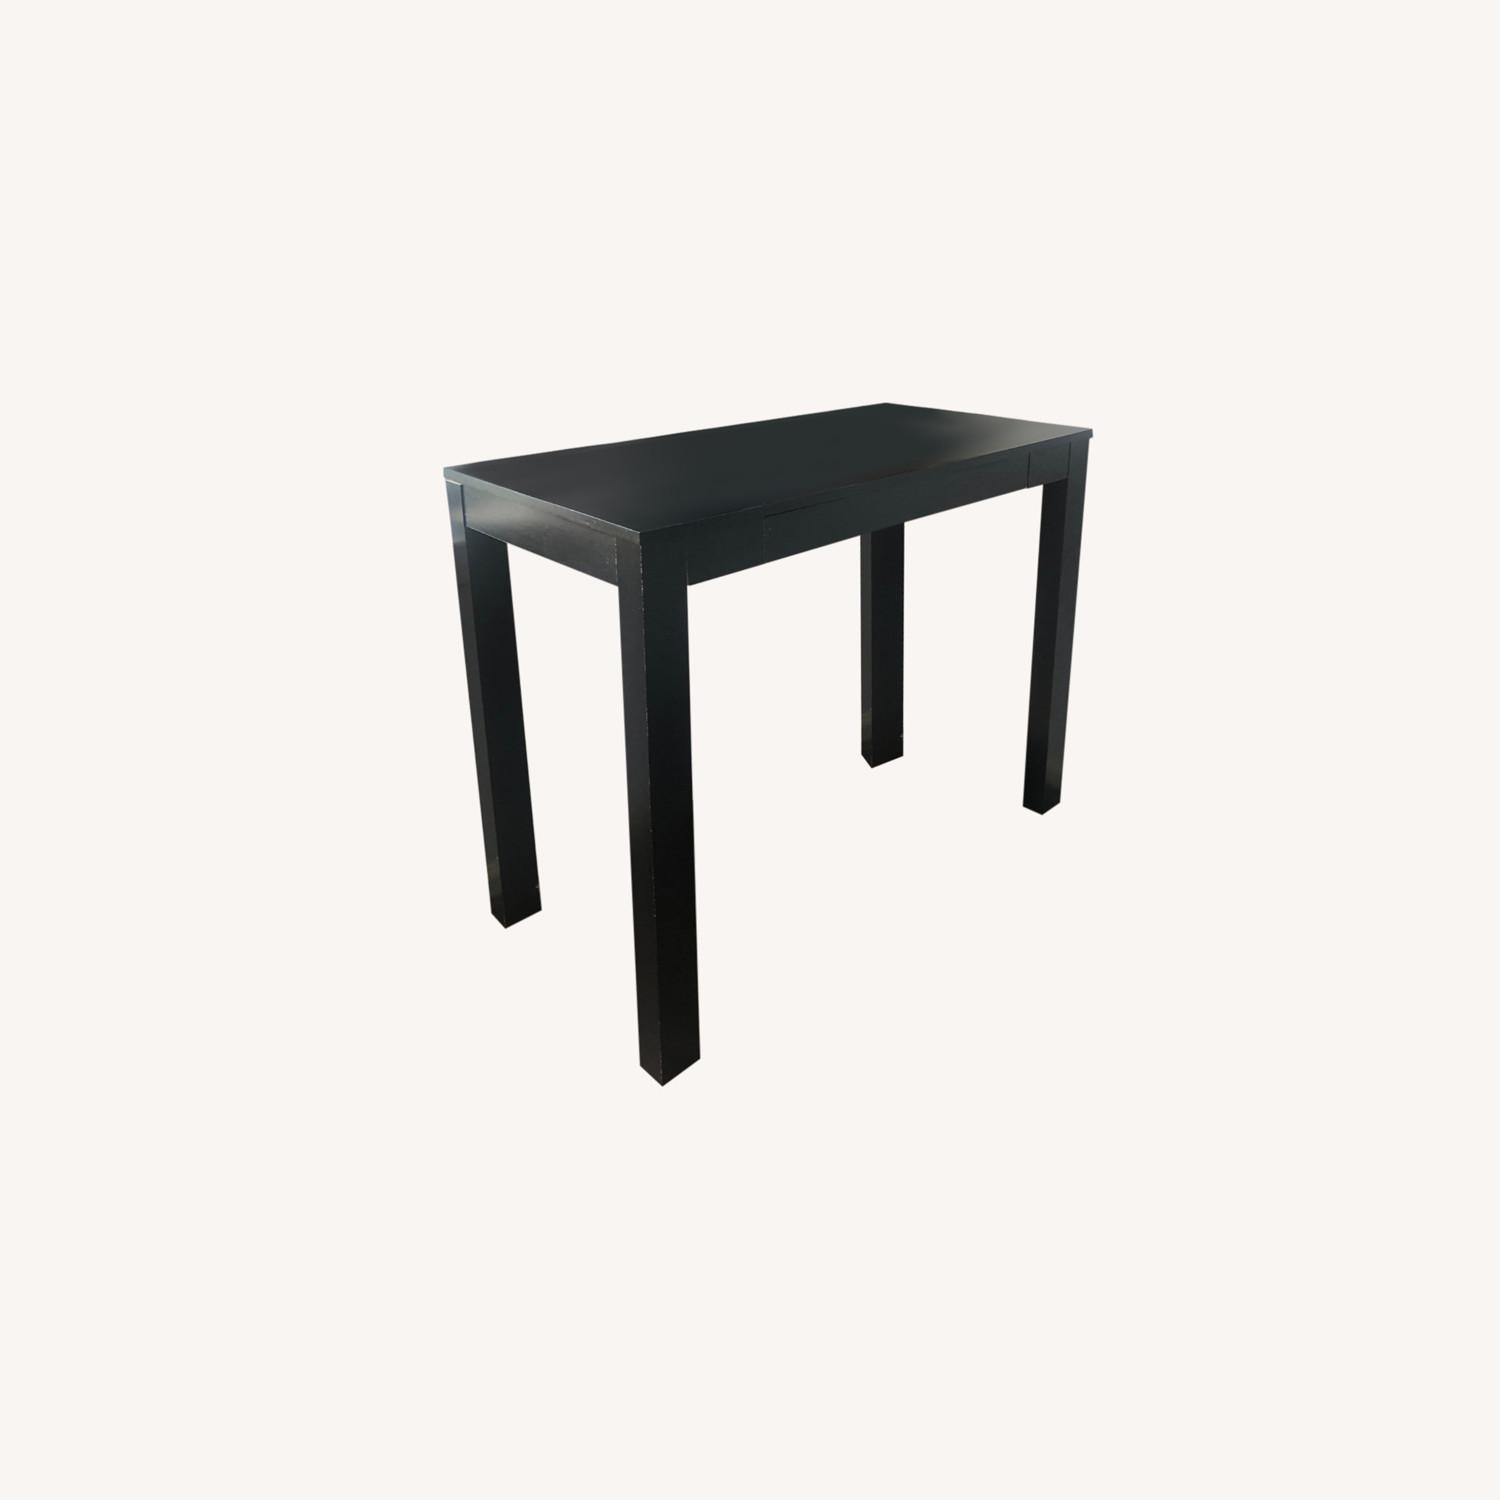 IKEA Black Desk with One Drawer - image-0